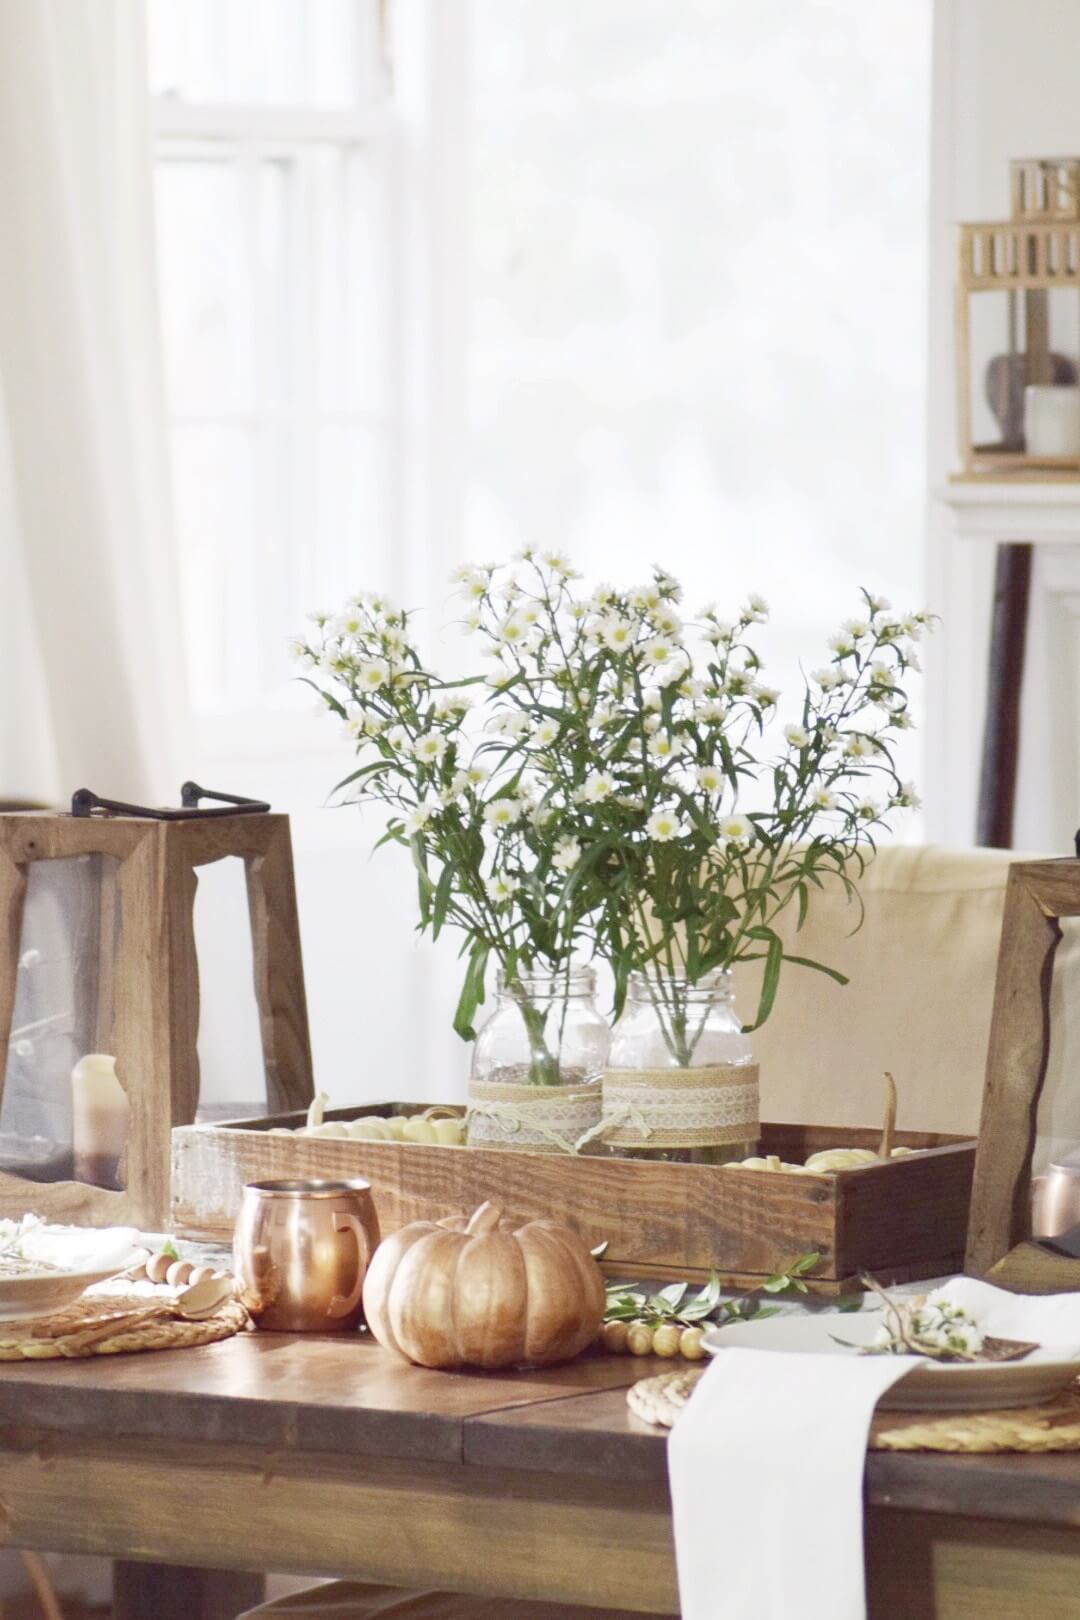 A Rustic Retreat at Your Table